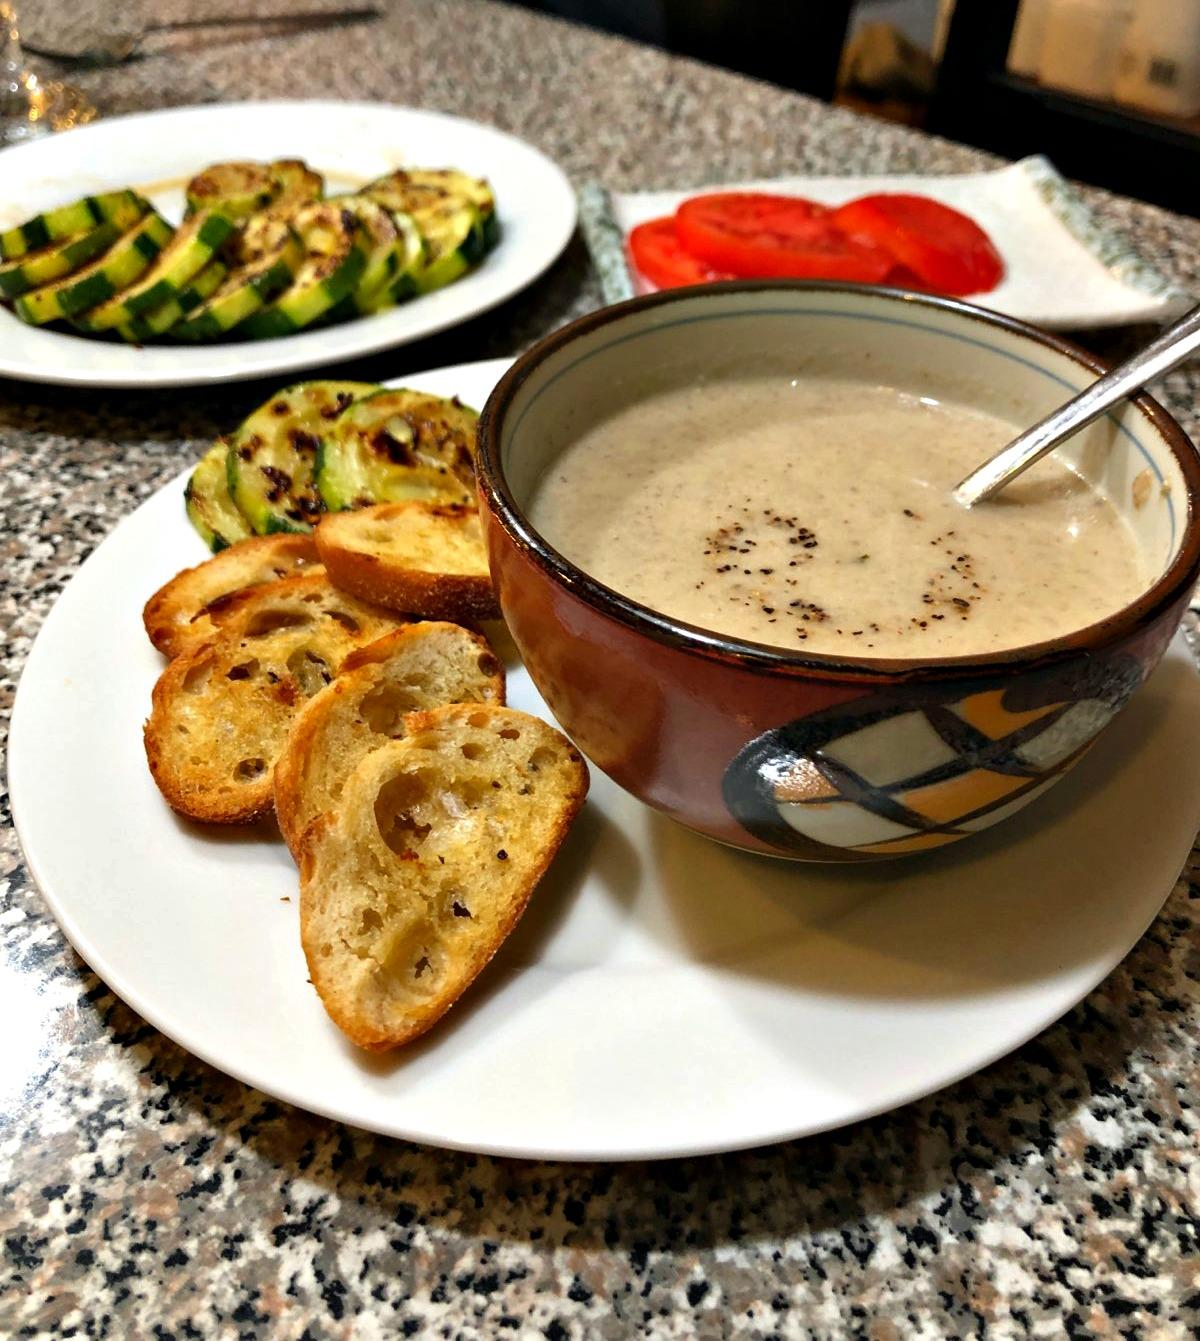 creamy mushroom soup with toasted bread and Brussel sprouts